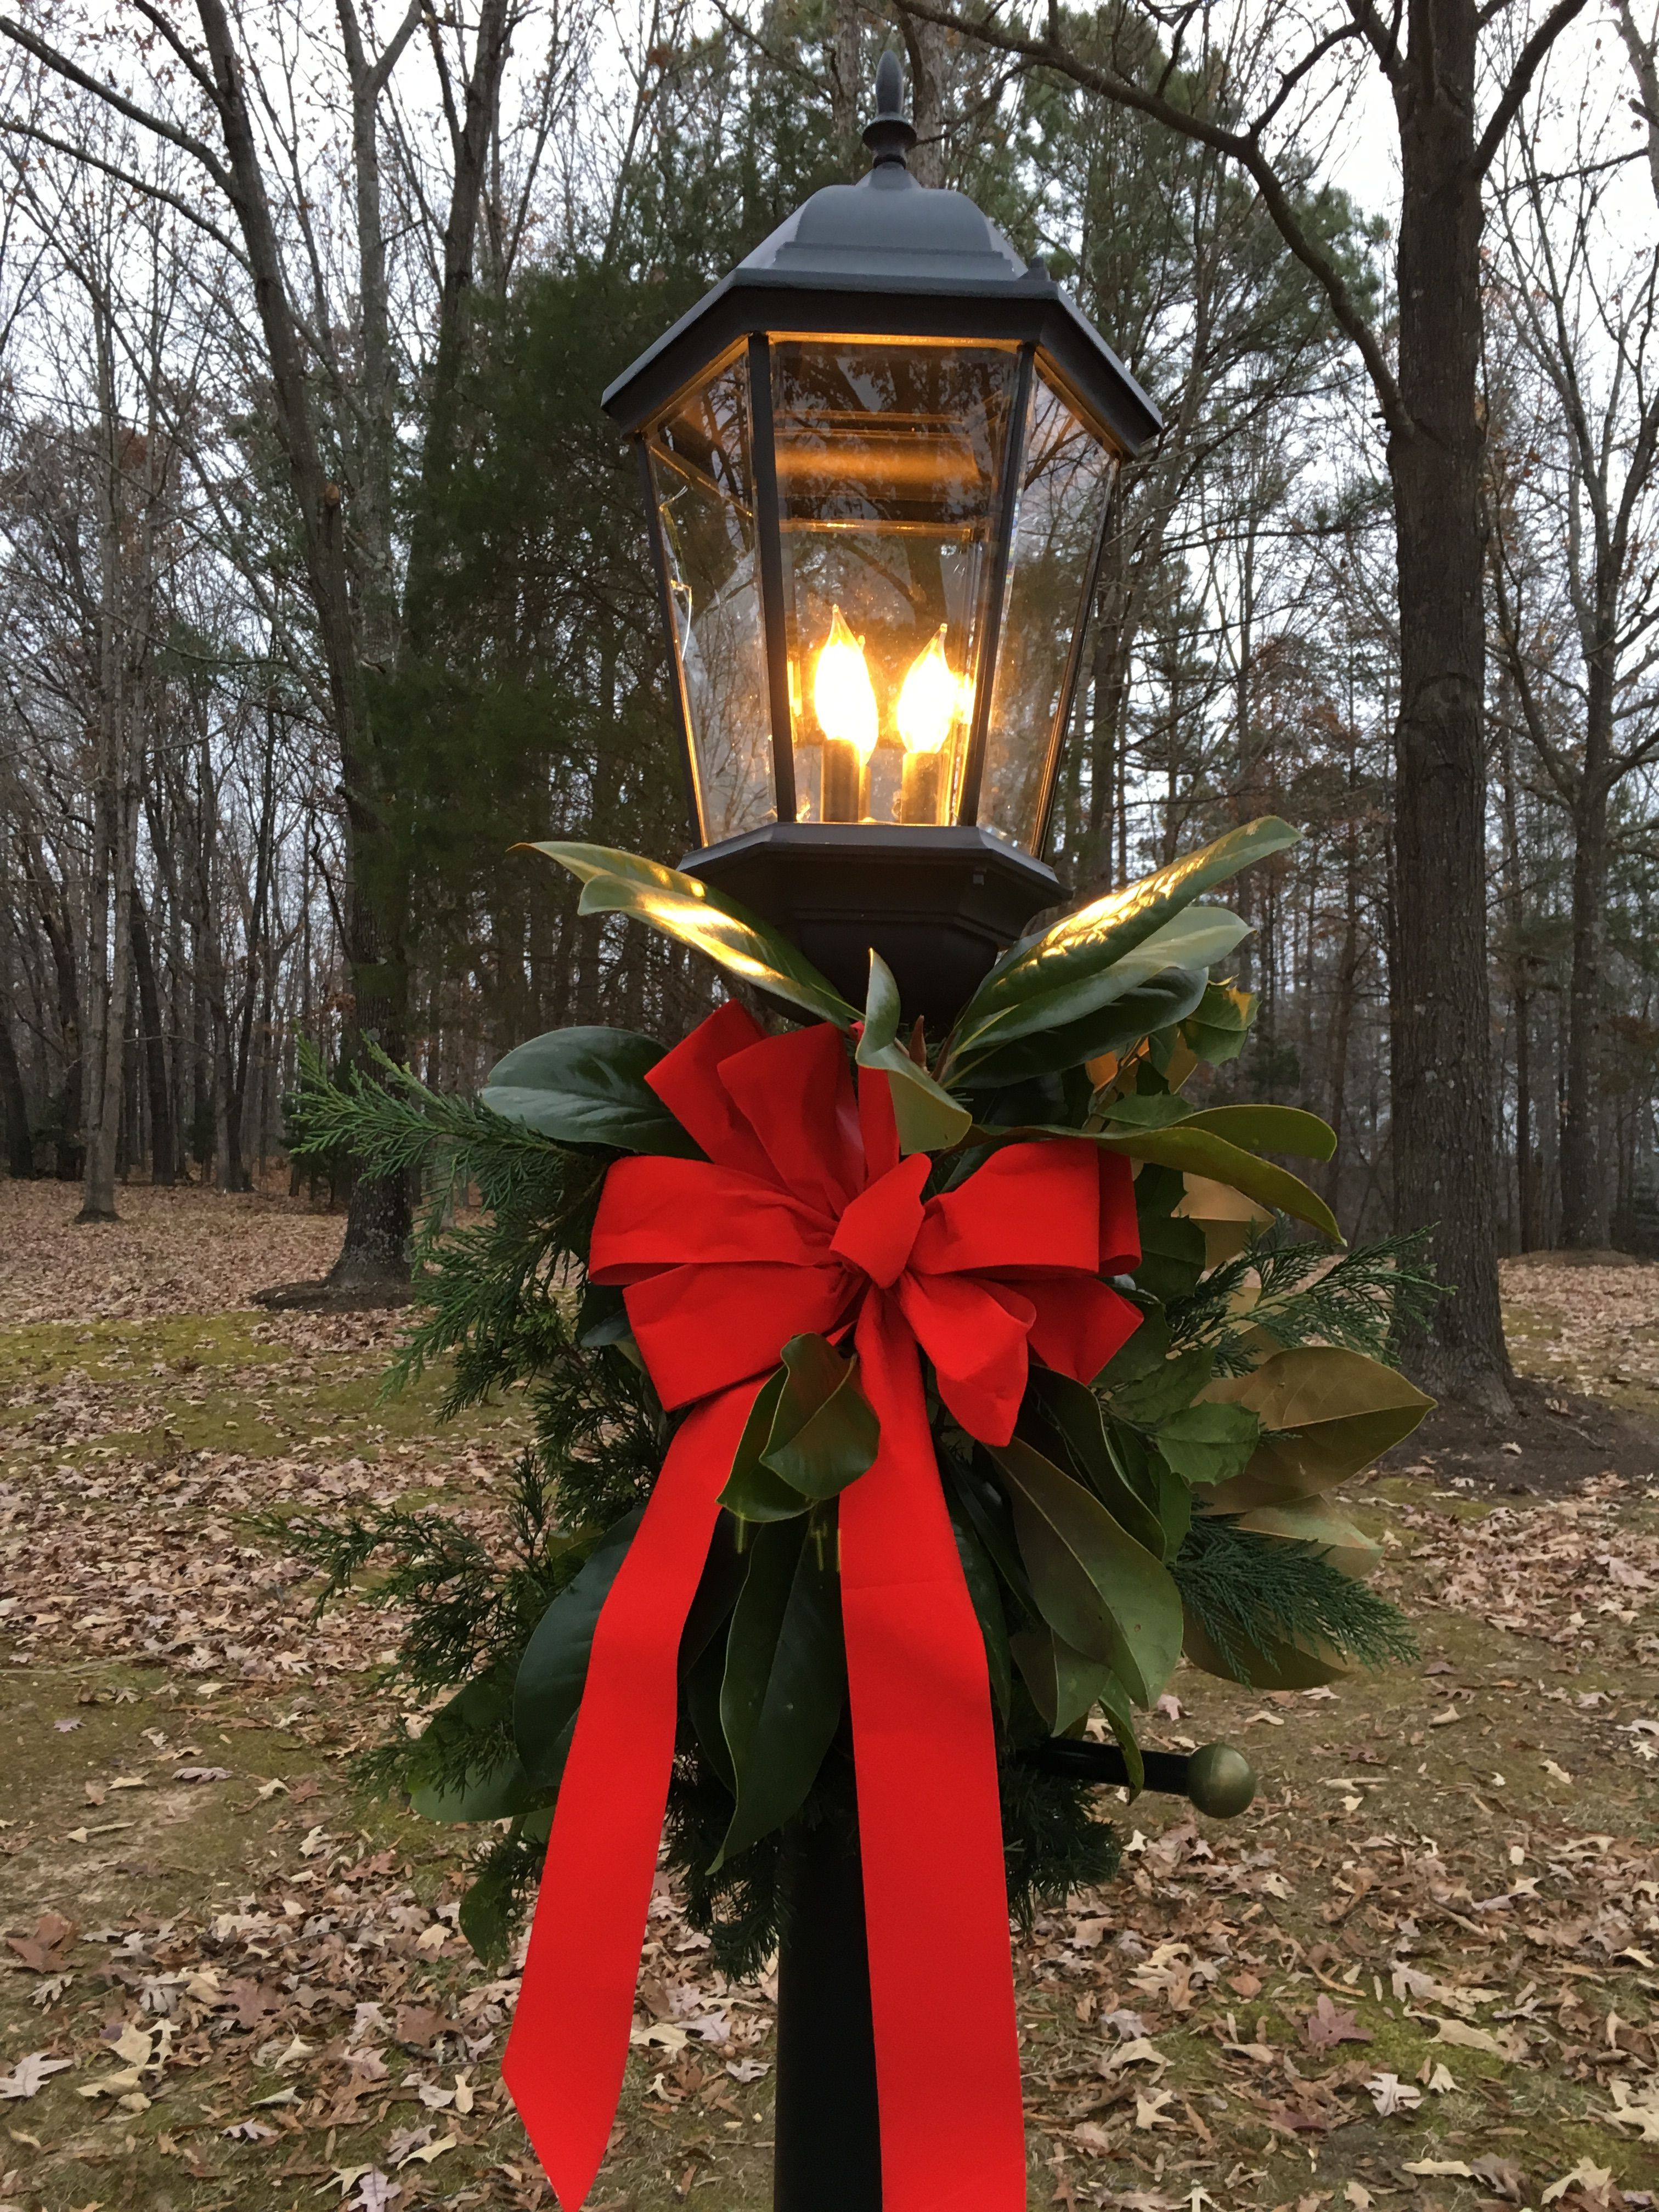 Outdoor Christmas Lamp Posts.Pin By Temple Joyce On Lamp Posts Christmas Lamp Post